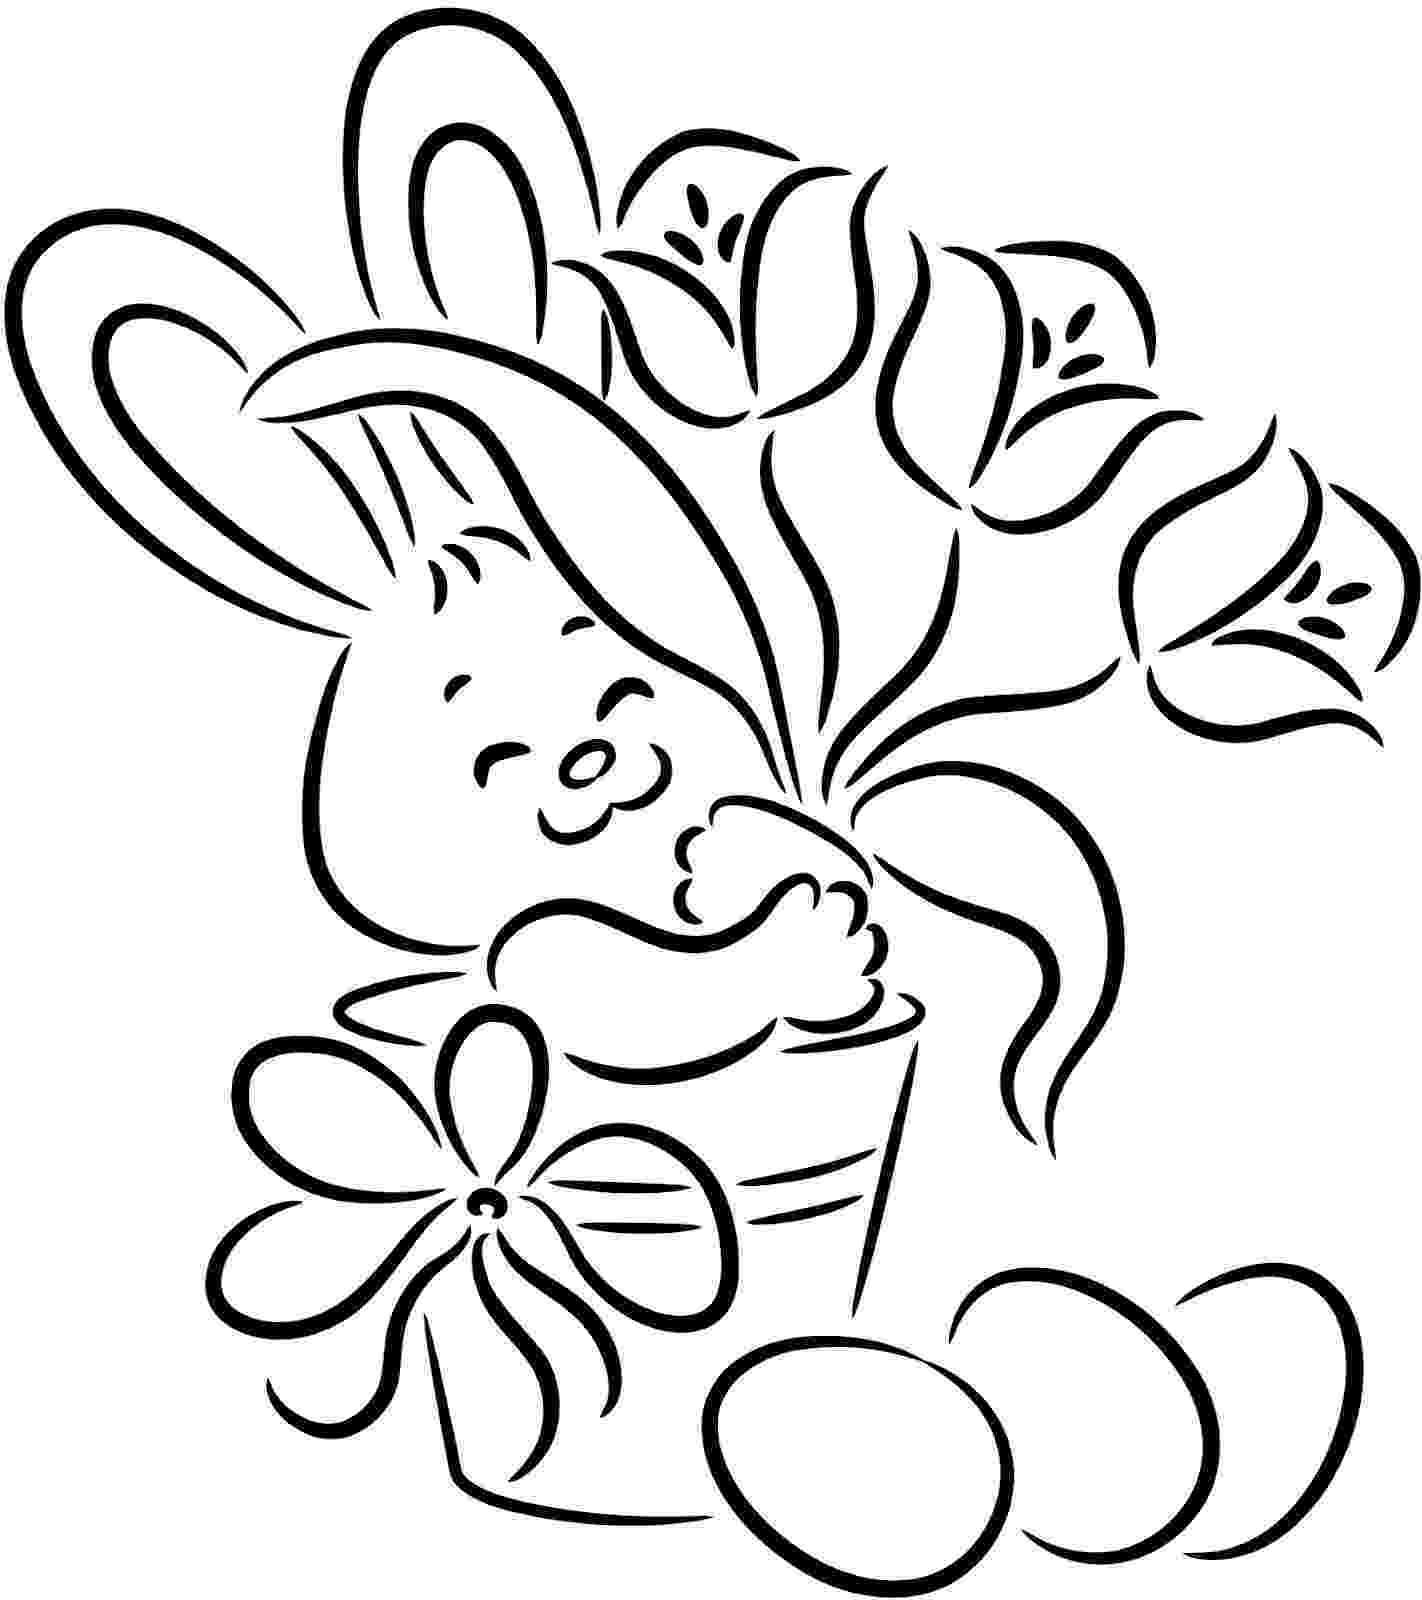 easter bunny coloring pages free printable easter bunny coloring pages for kids coloring bunny easter pages